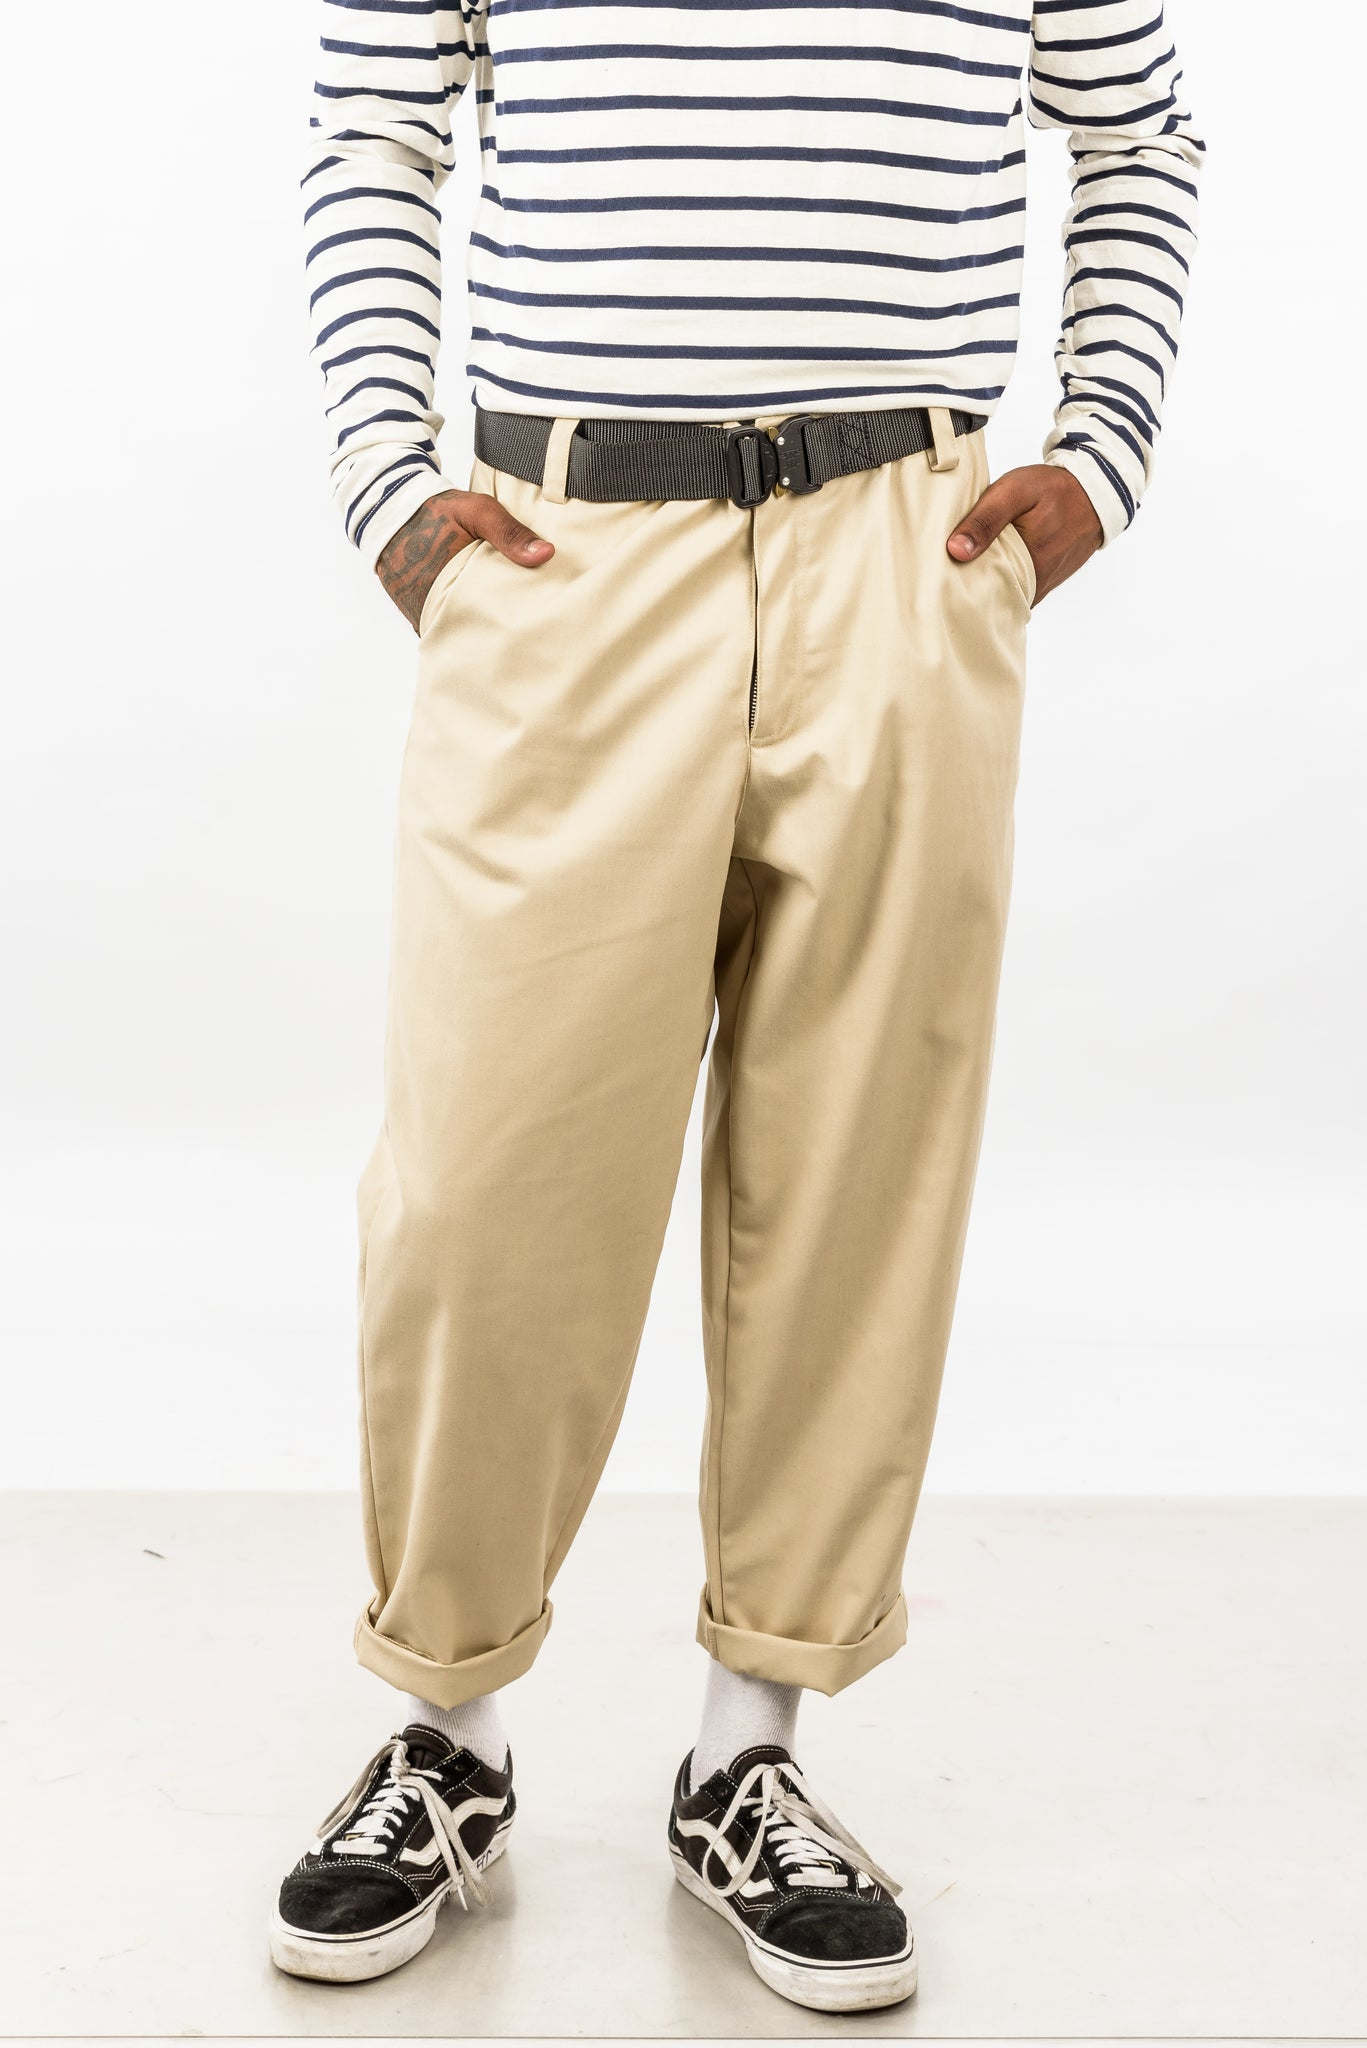 CROPPED TROUSER - OFF WHITE